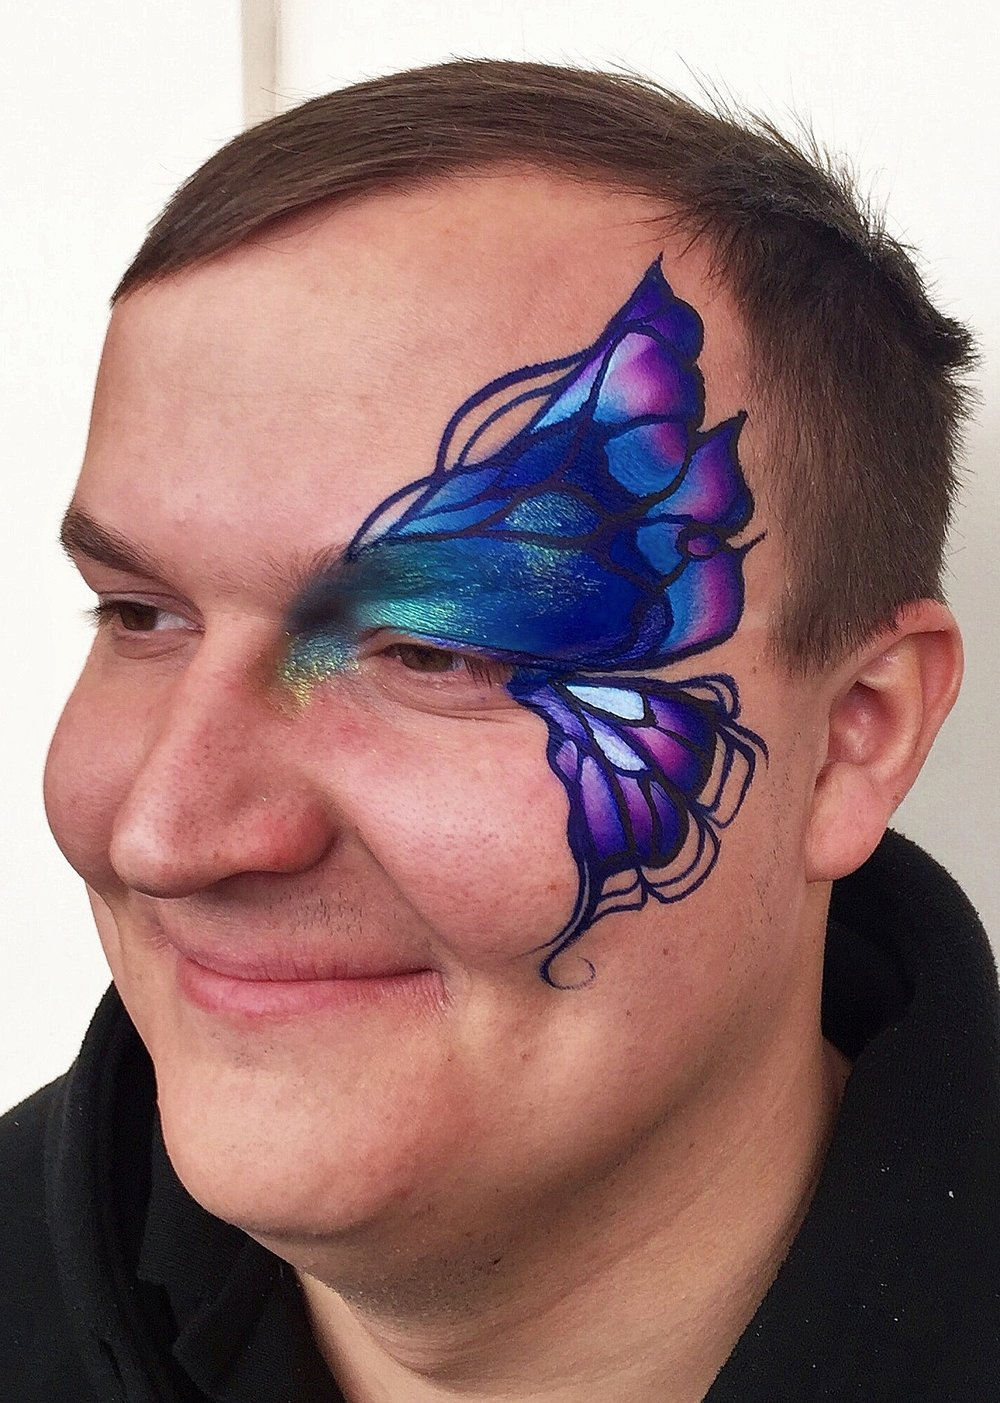 MAN BUTTERFLY BY BRIERLEY THORPE.JPG